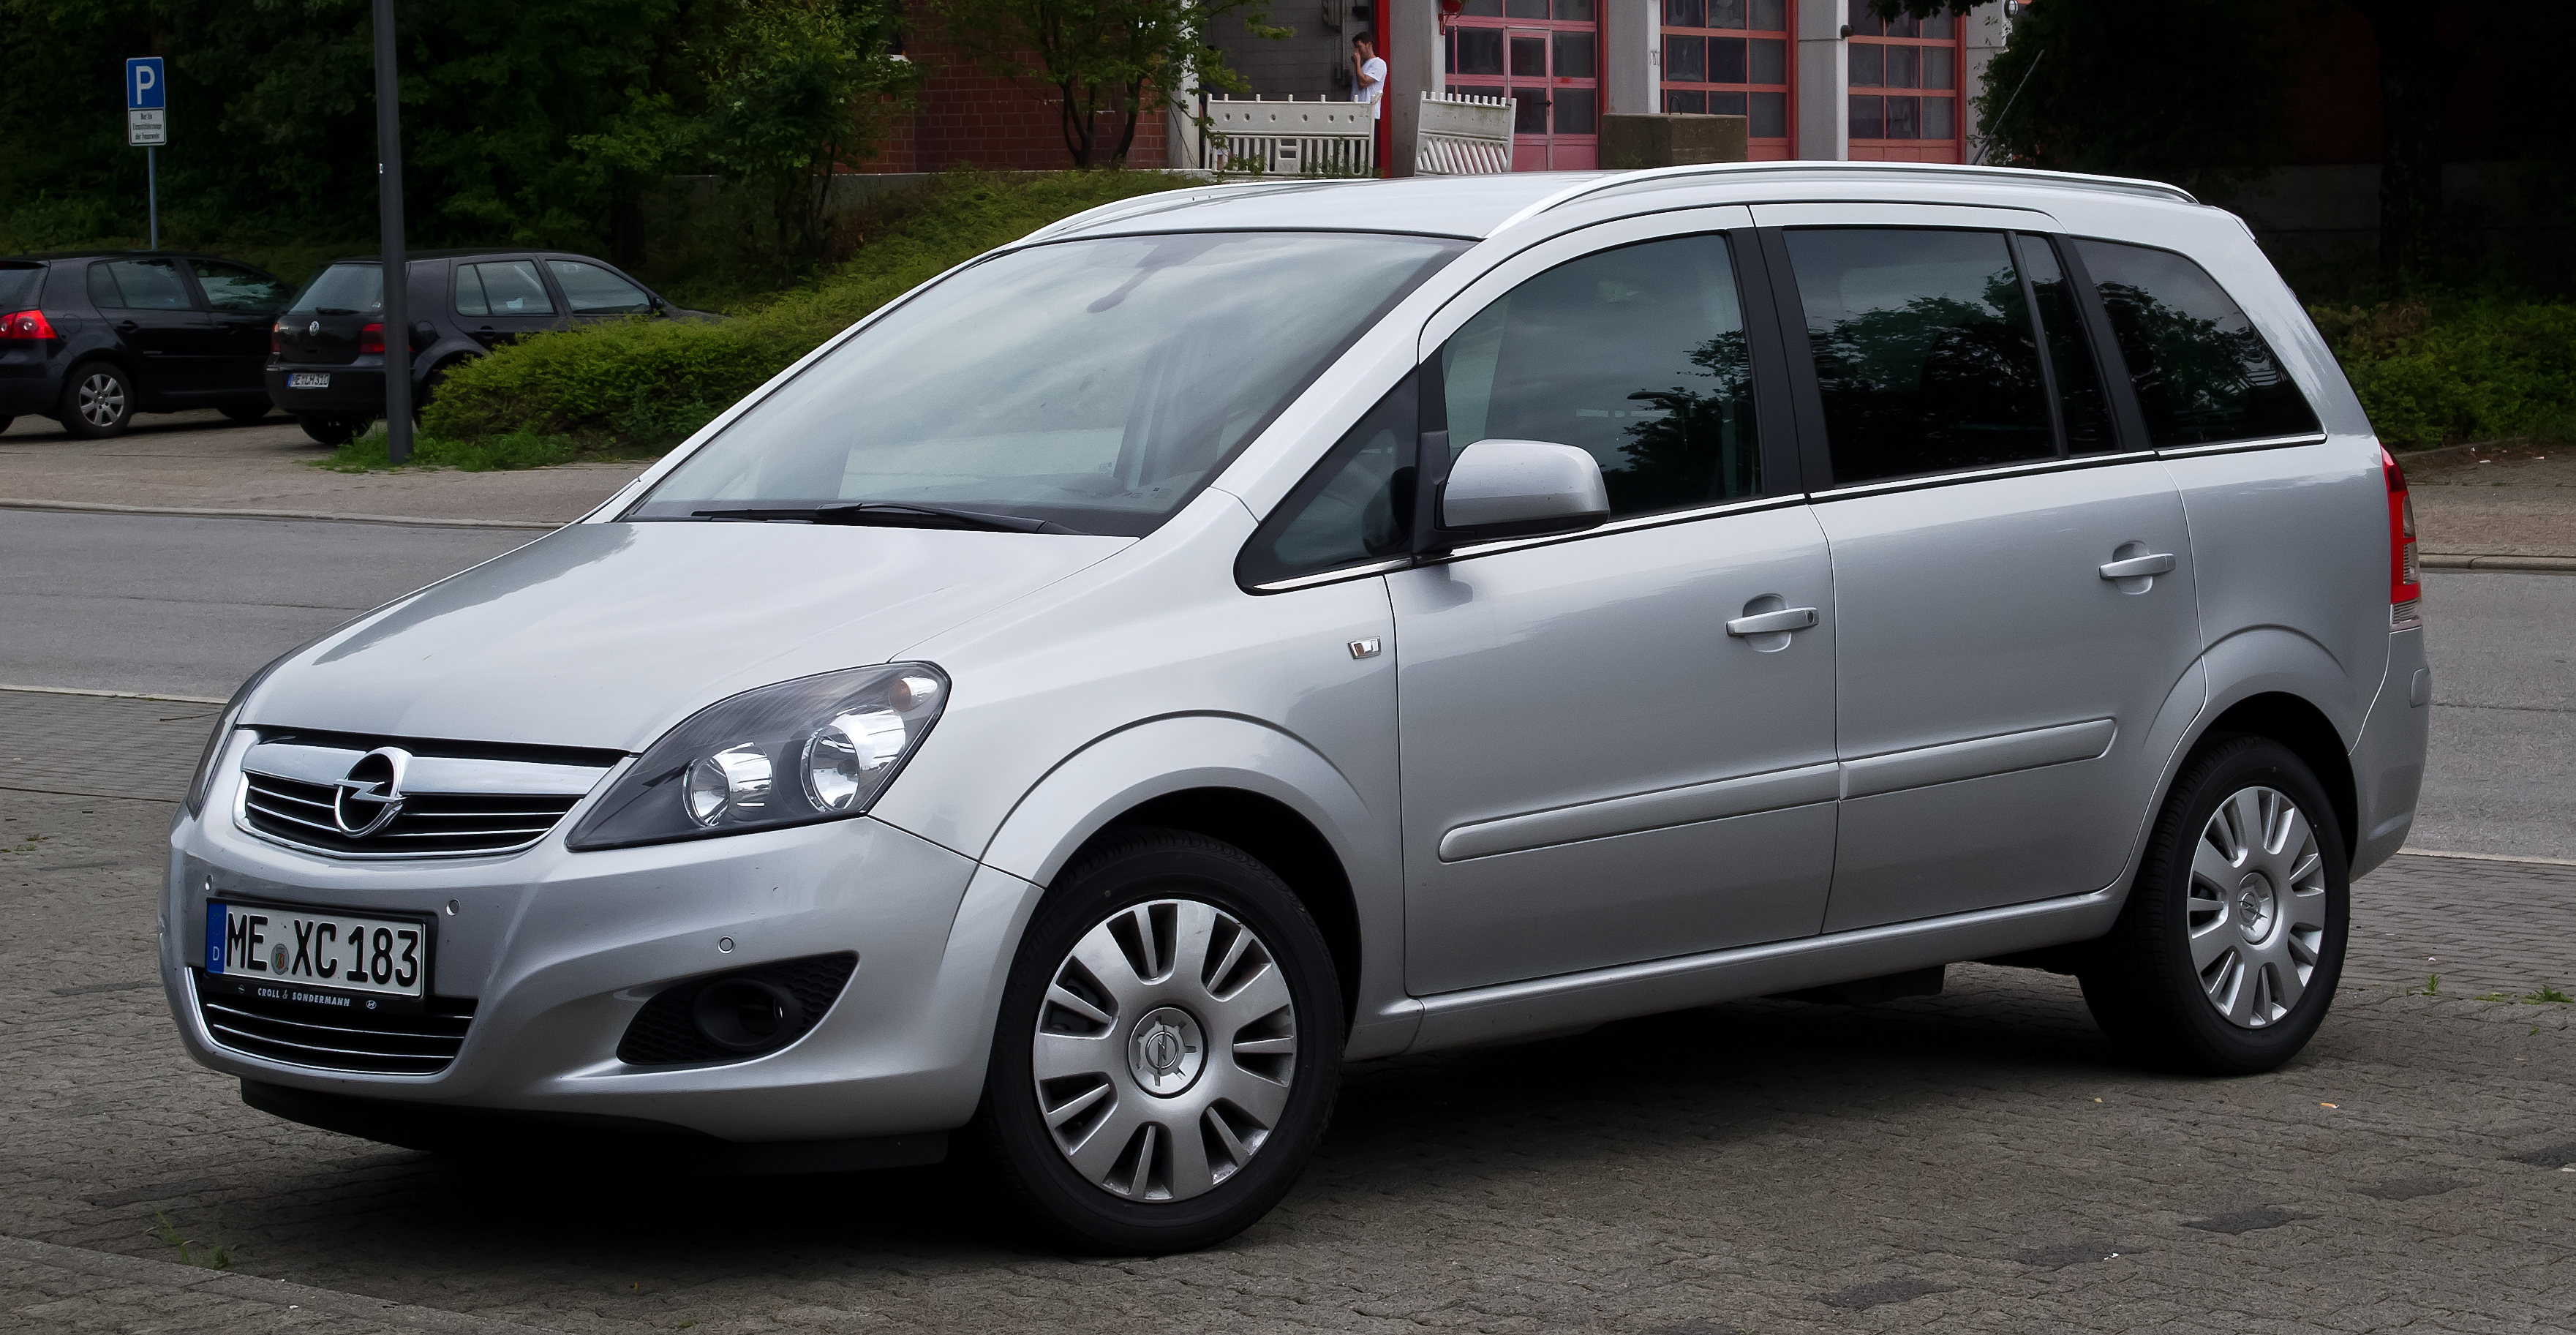 2012 opel zafira b pictures information and specs. Black Bedroom Furniture Sets. Home Design Ideas